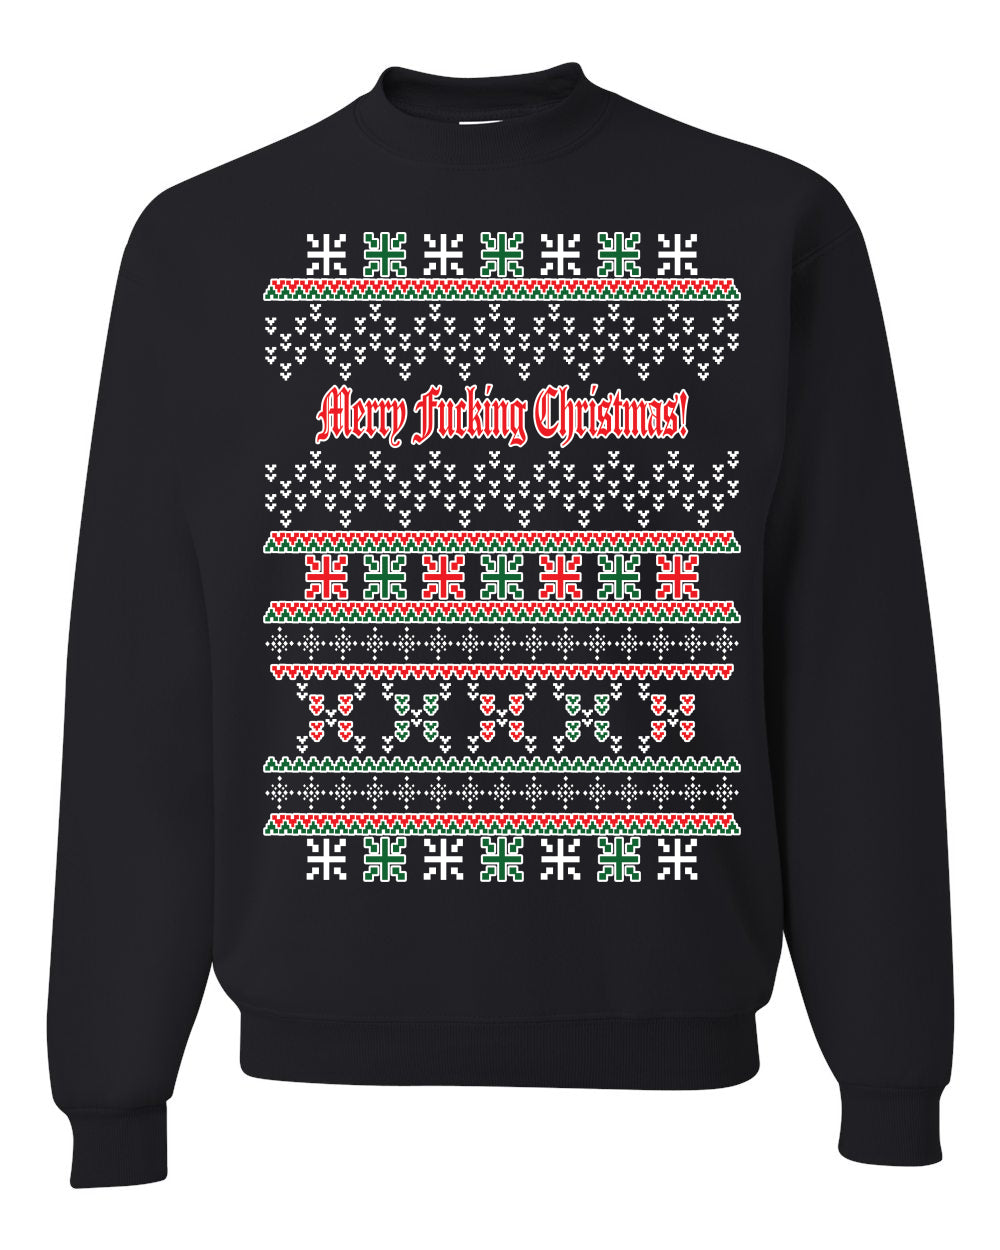 Merry Fucking Christmas Unisex Crewneck Graphic Sweatshirt